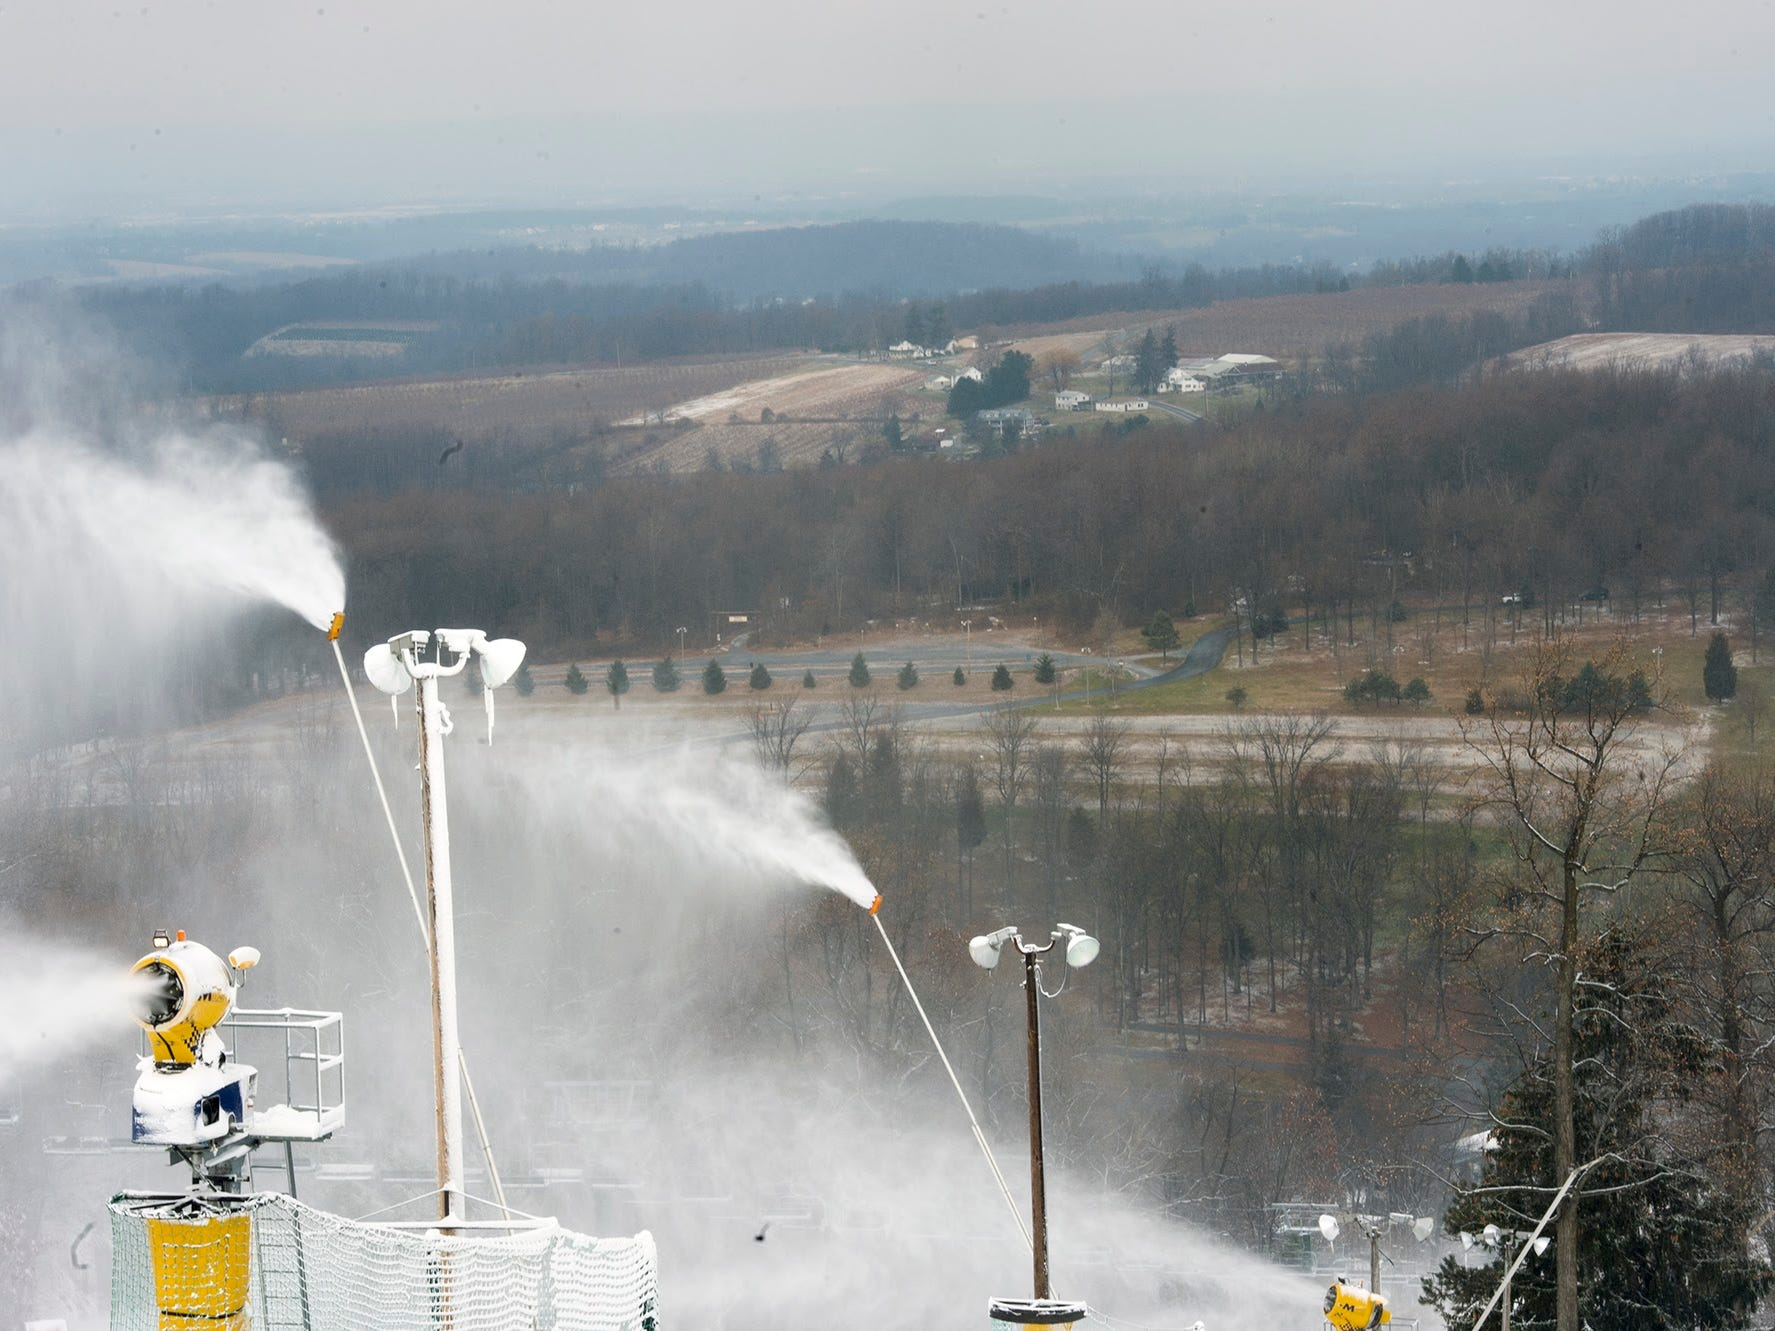 There may be 10 feet of snow at the top of the mountain but the landscape around Warrington Township at Roundtop Mountain Resort is snow free after a morning dusting Sunday December 11, 2016.